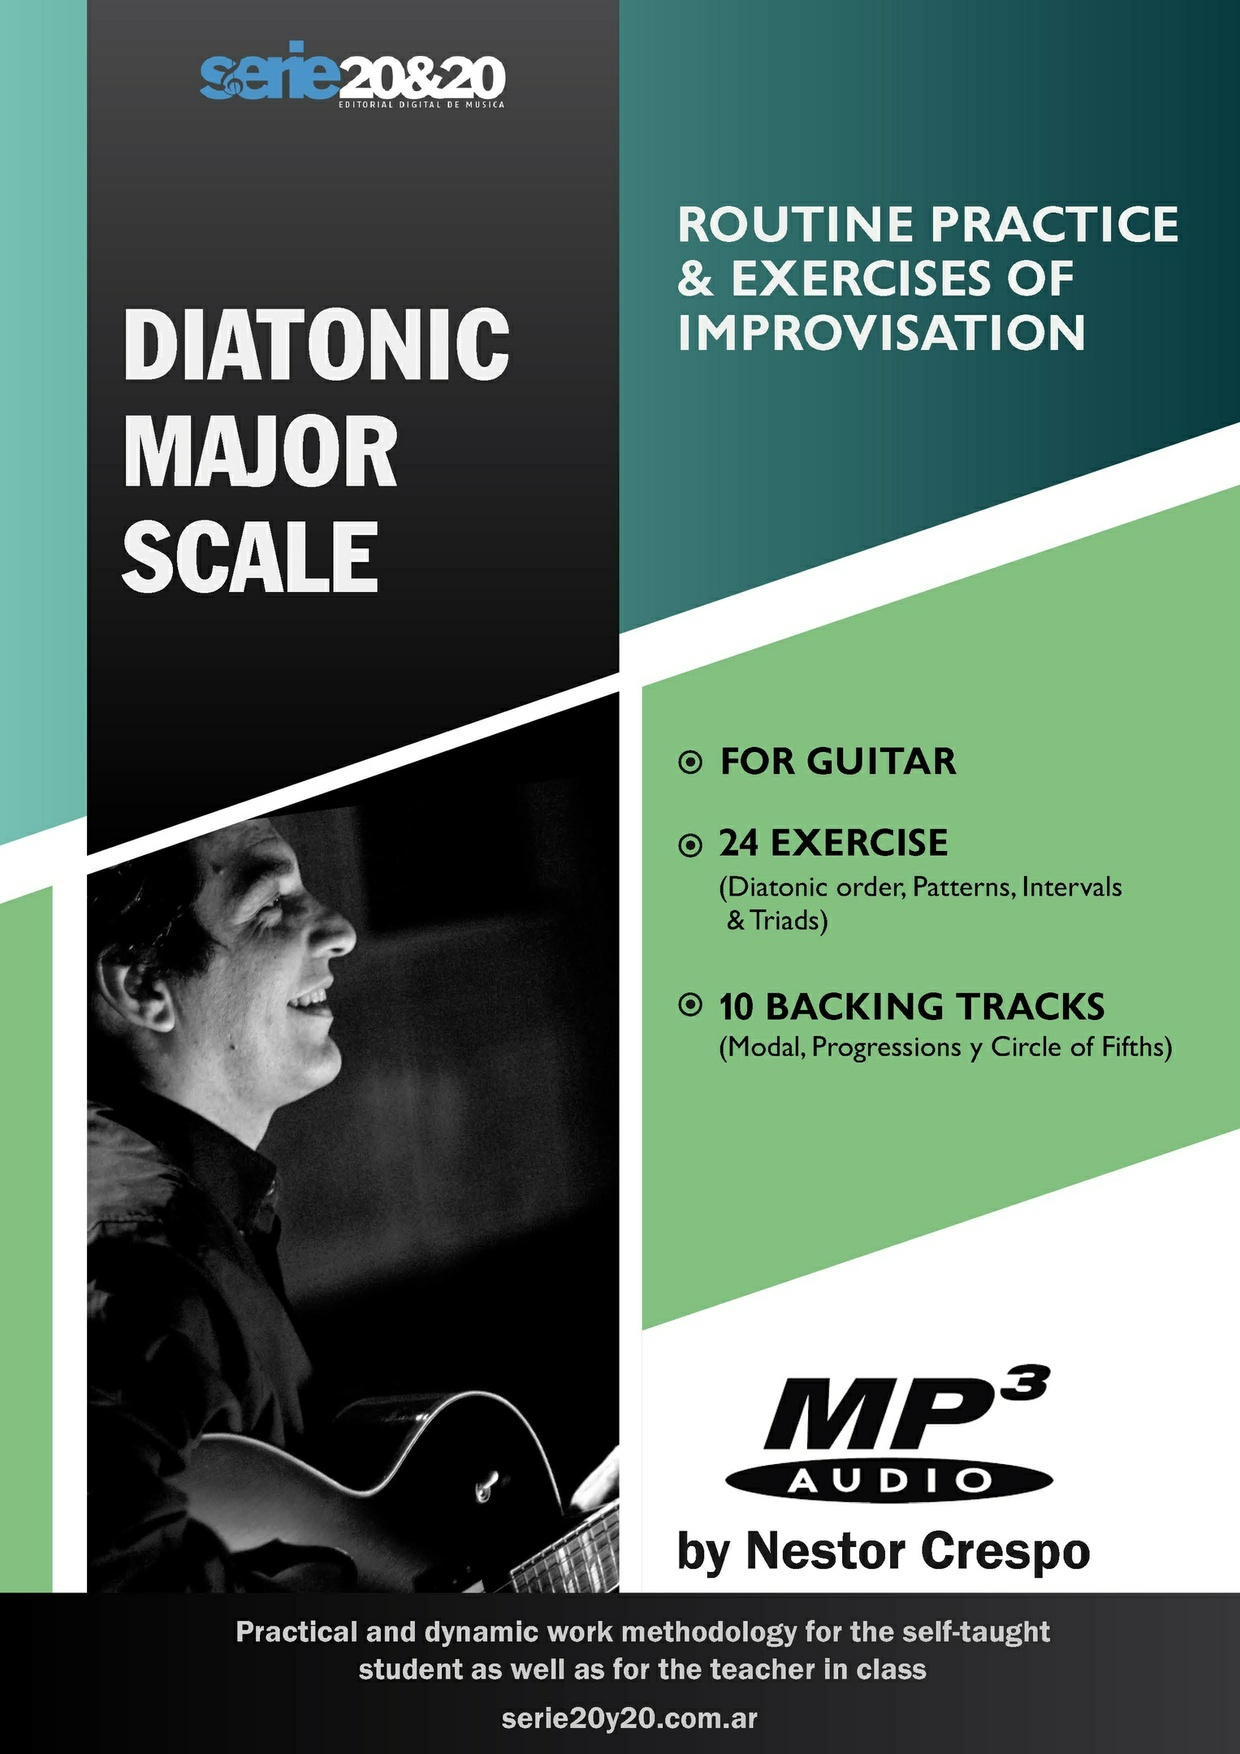 GUITAR / Major Scale  (Practice Routine & Improvisation)